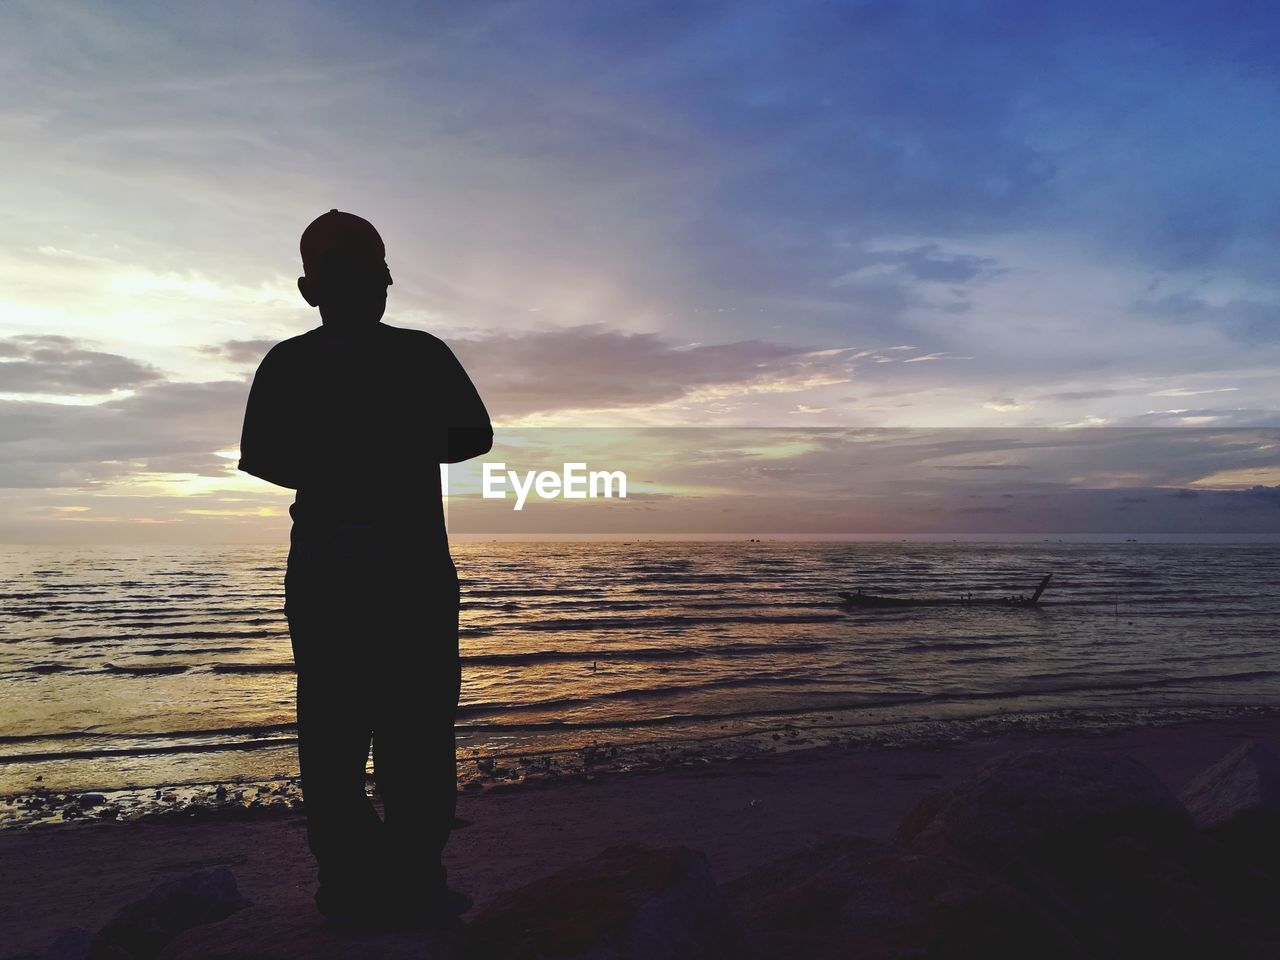 sea, sunset, beach, silhouette, beauty in nature, nature, water, horizon over water, scenics, tranquil scene, one person, sky, standing, tranquility, men, real people, cloud - sky, sand, full length, outdoors, lifestyles, wave, one man only, day, adult, people